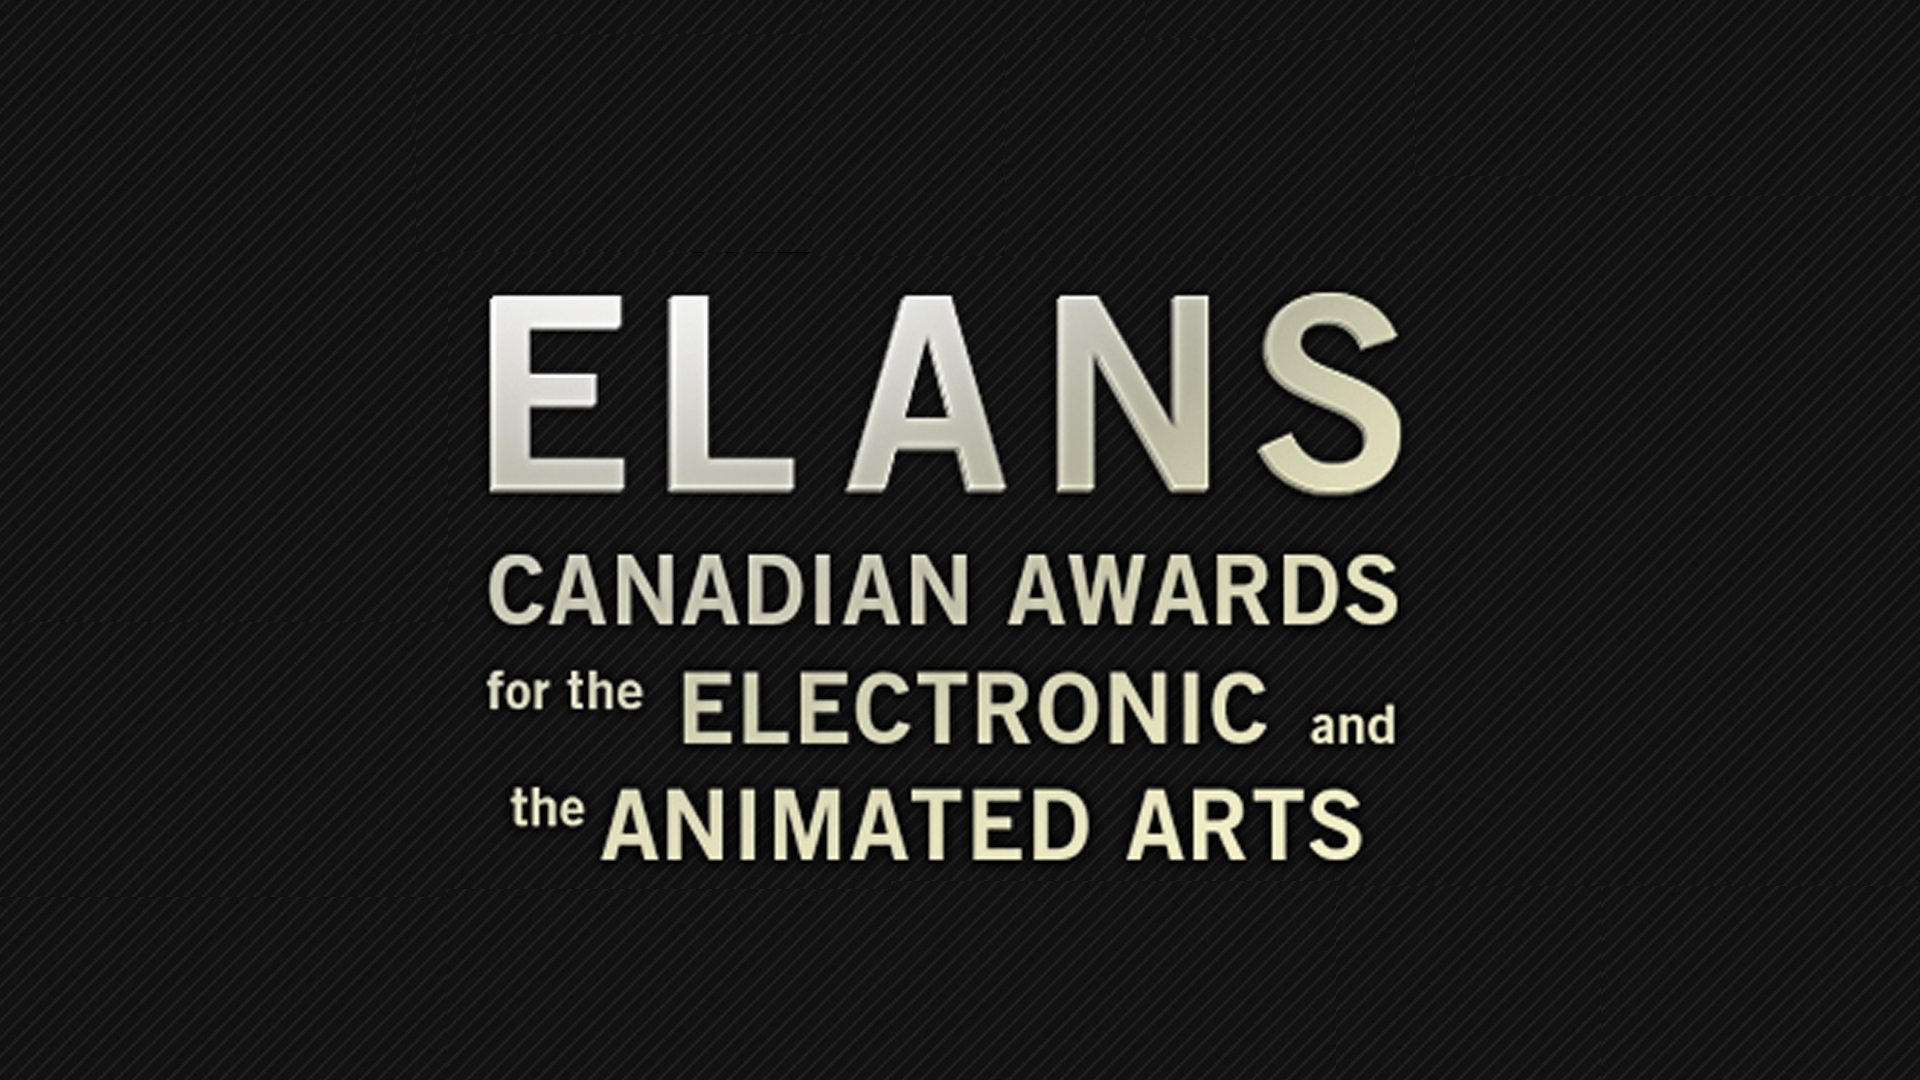 Canadian Awards for the Animated and Electronic Arts